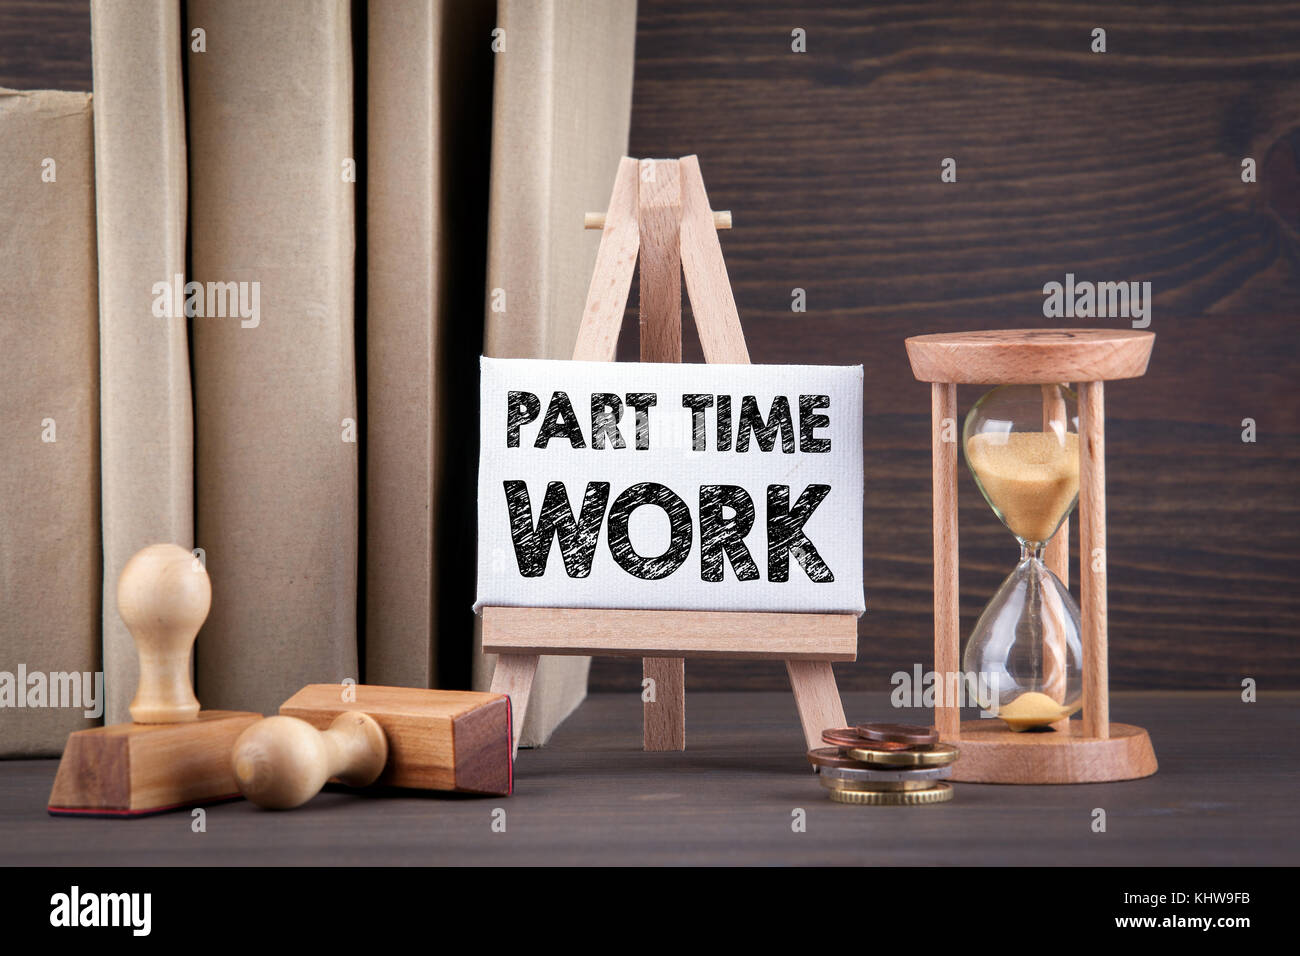 Part time work. Sandglass, hourglass or egg timer on wooden table  - Stock Image